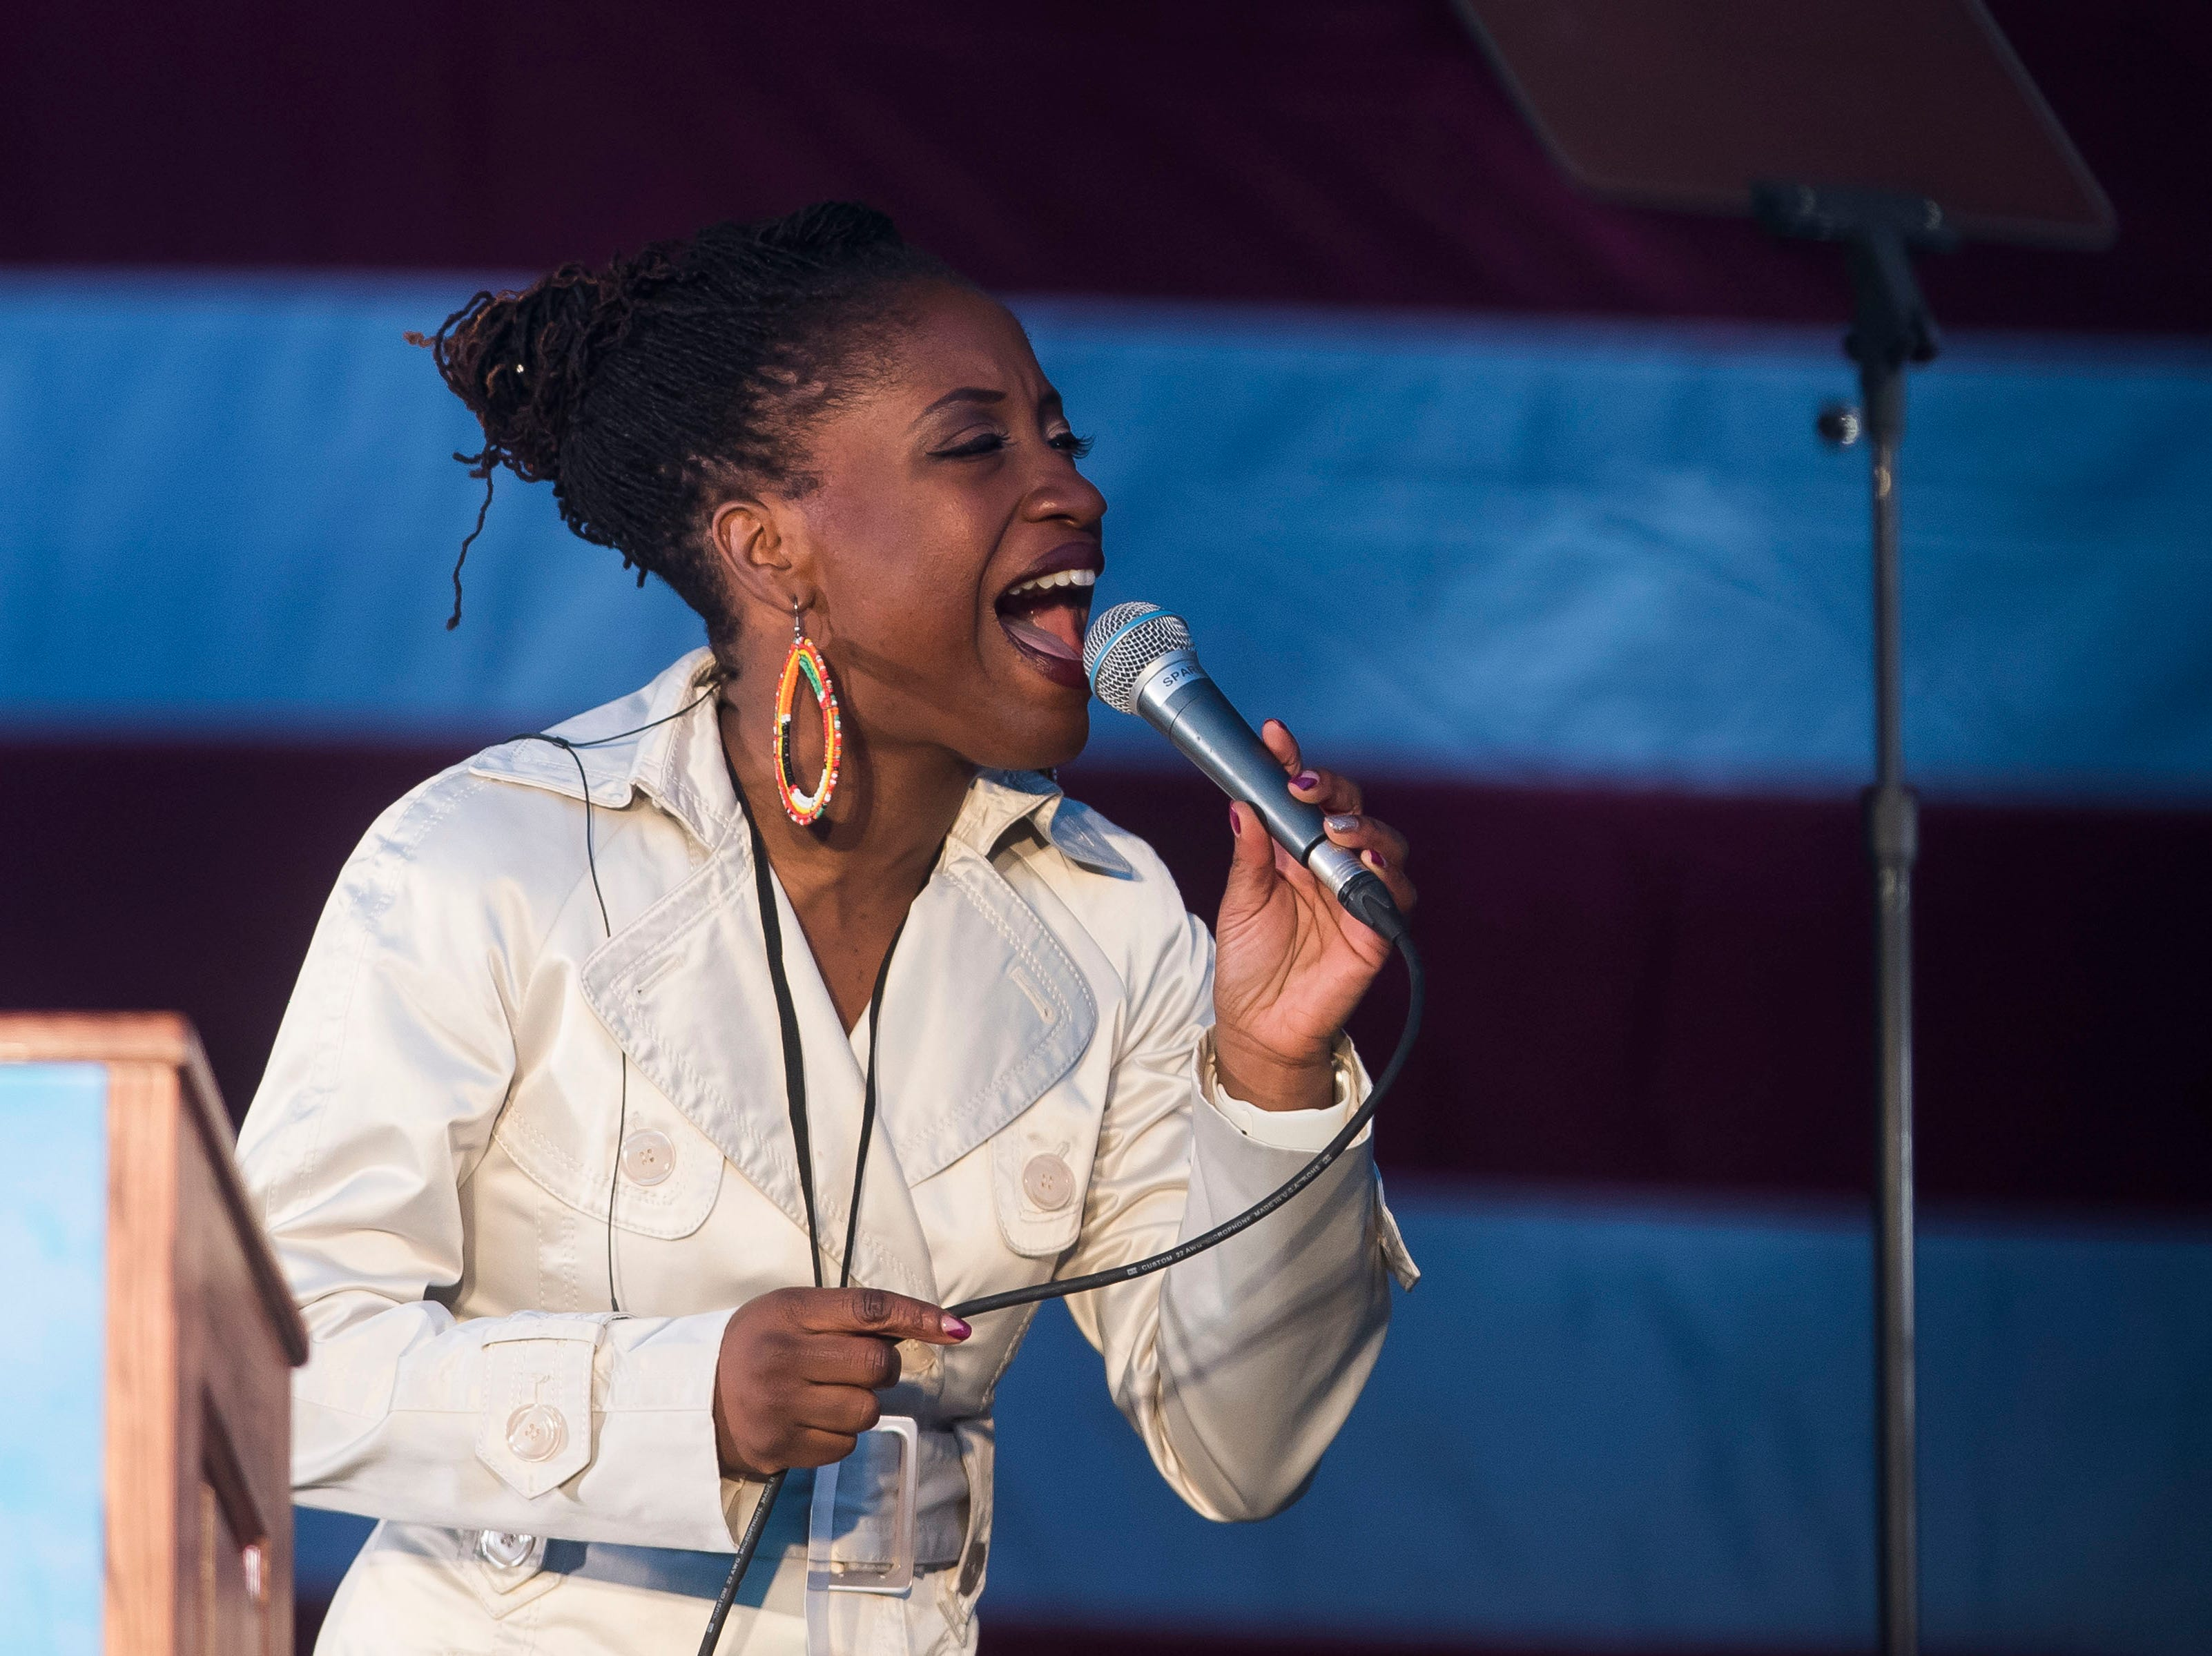 Denver resident and soul singer SuCh performs at the John Hickenlooper presidential campaign kick-off rally on Thursday, March 7, 2019, at the Greek Ampitheatre in Civic Center Park in Denver, Colo.